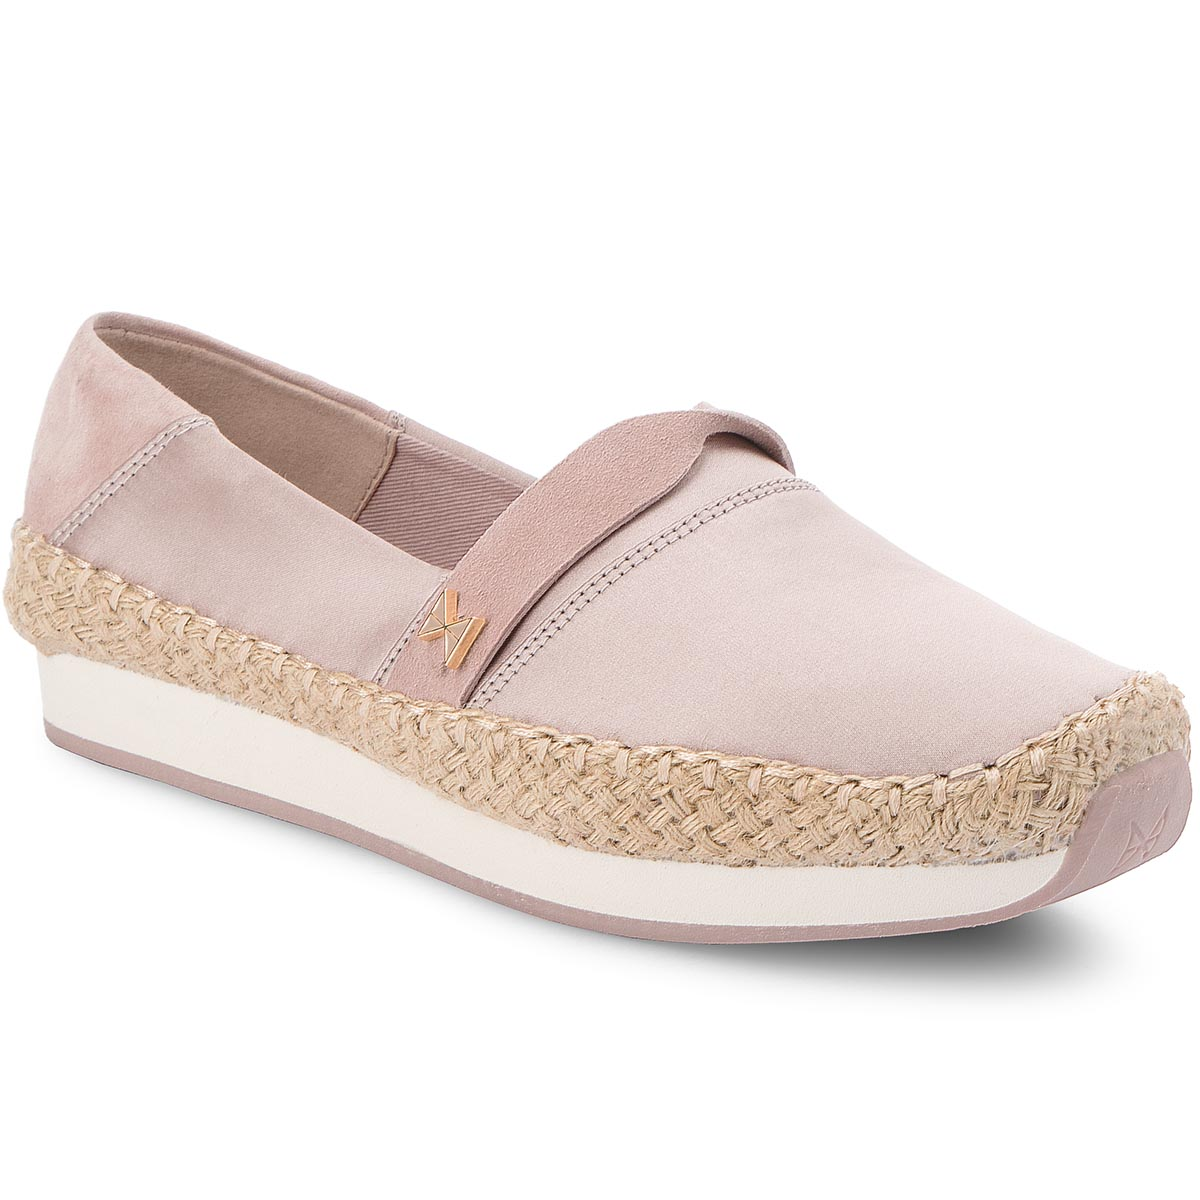 Espadrilles BUTTERFLY TWISTS - Maya BT31-009-136 Fawn